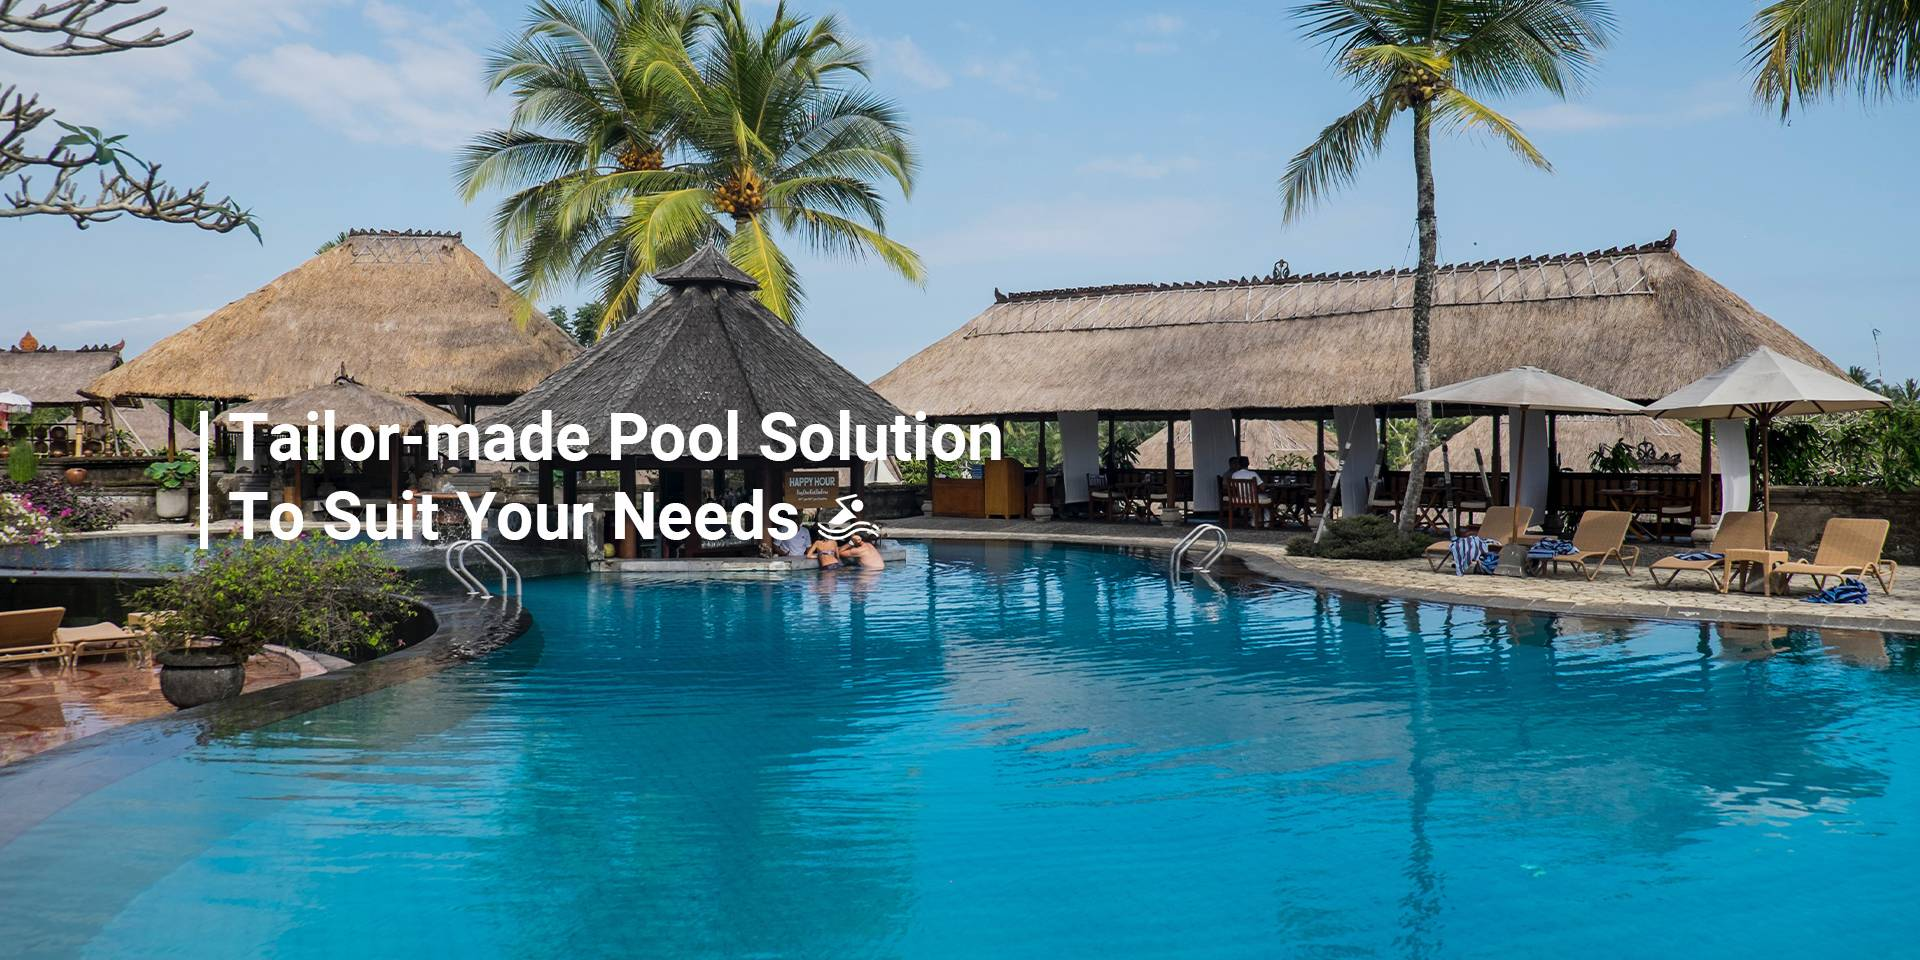 Tailor-made pool solution to suit your needs